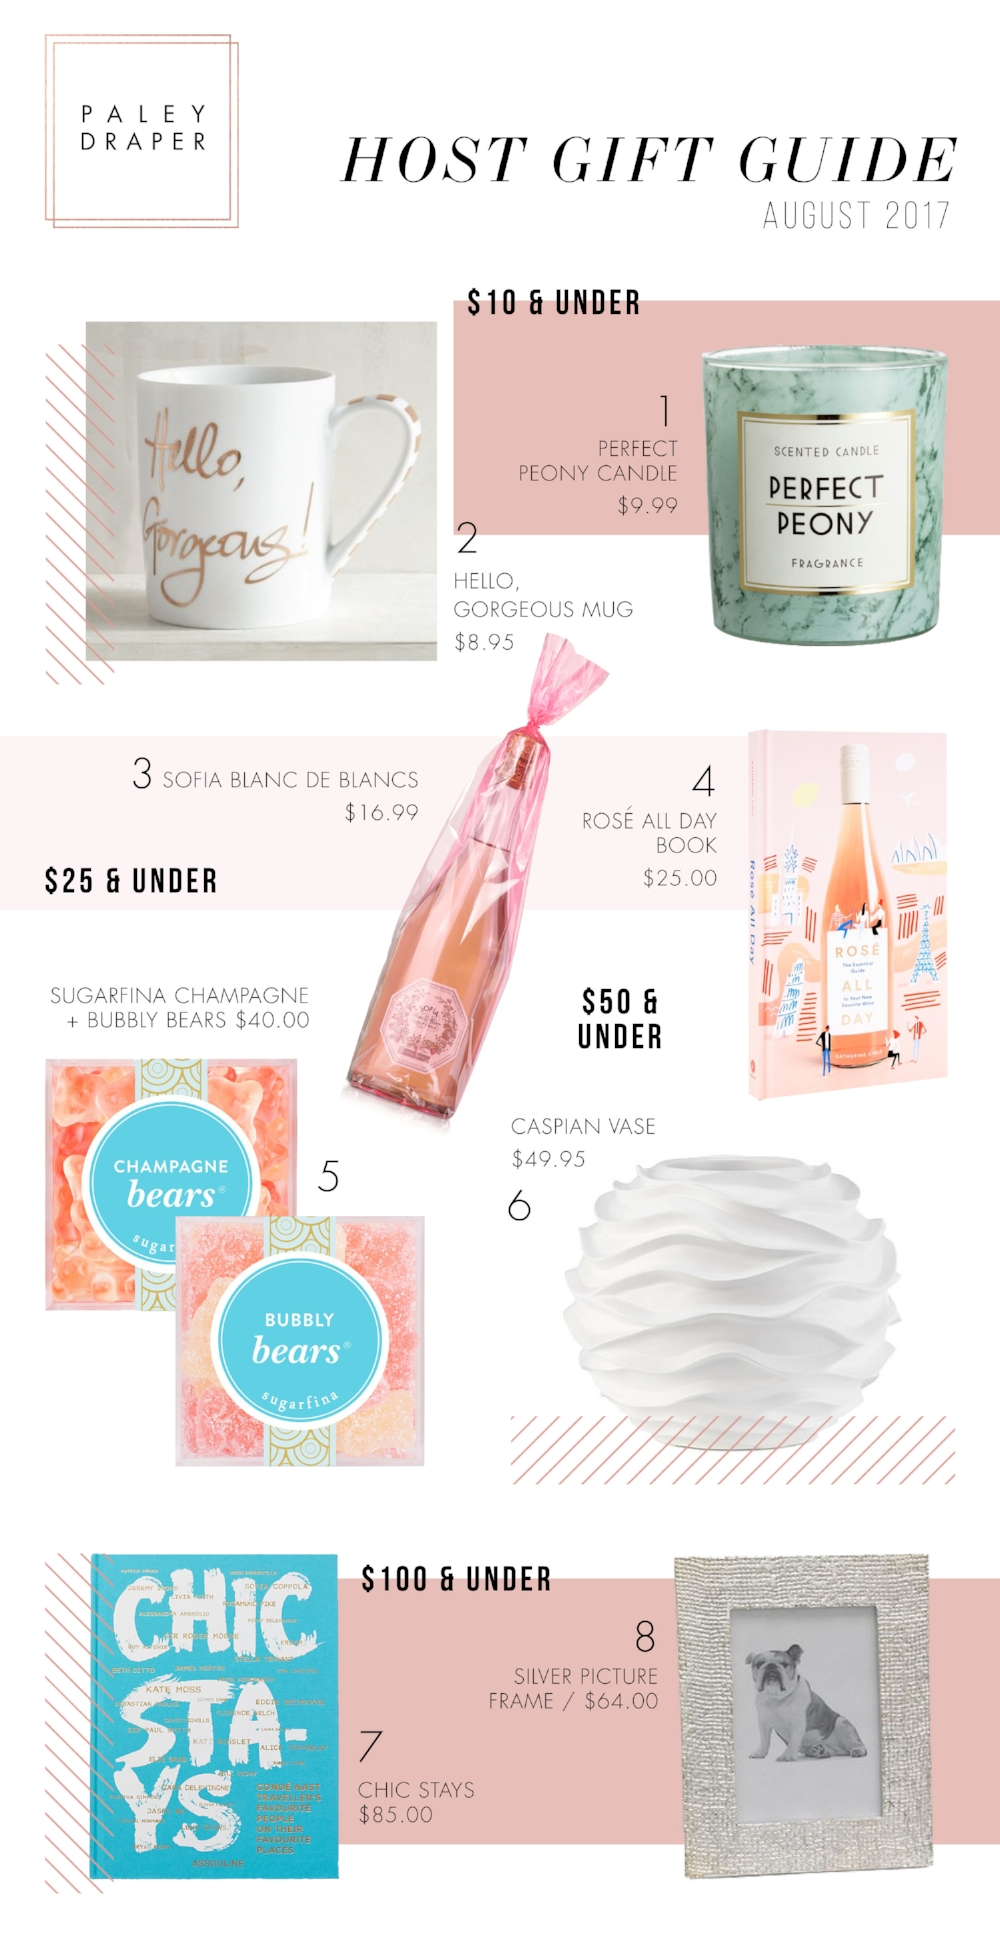 Host_Gift_Guide_Aug17_numbers.jpg